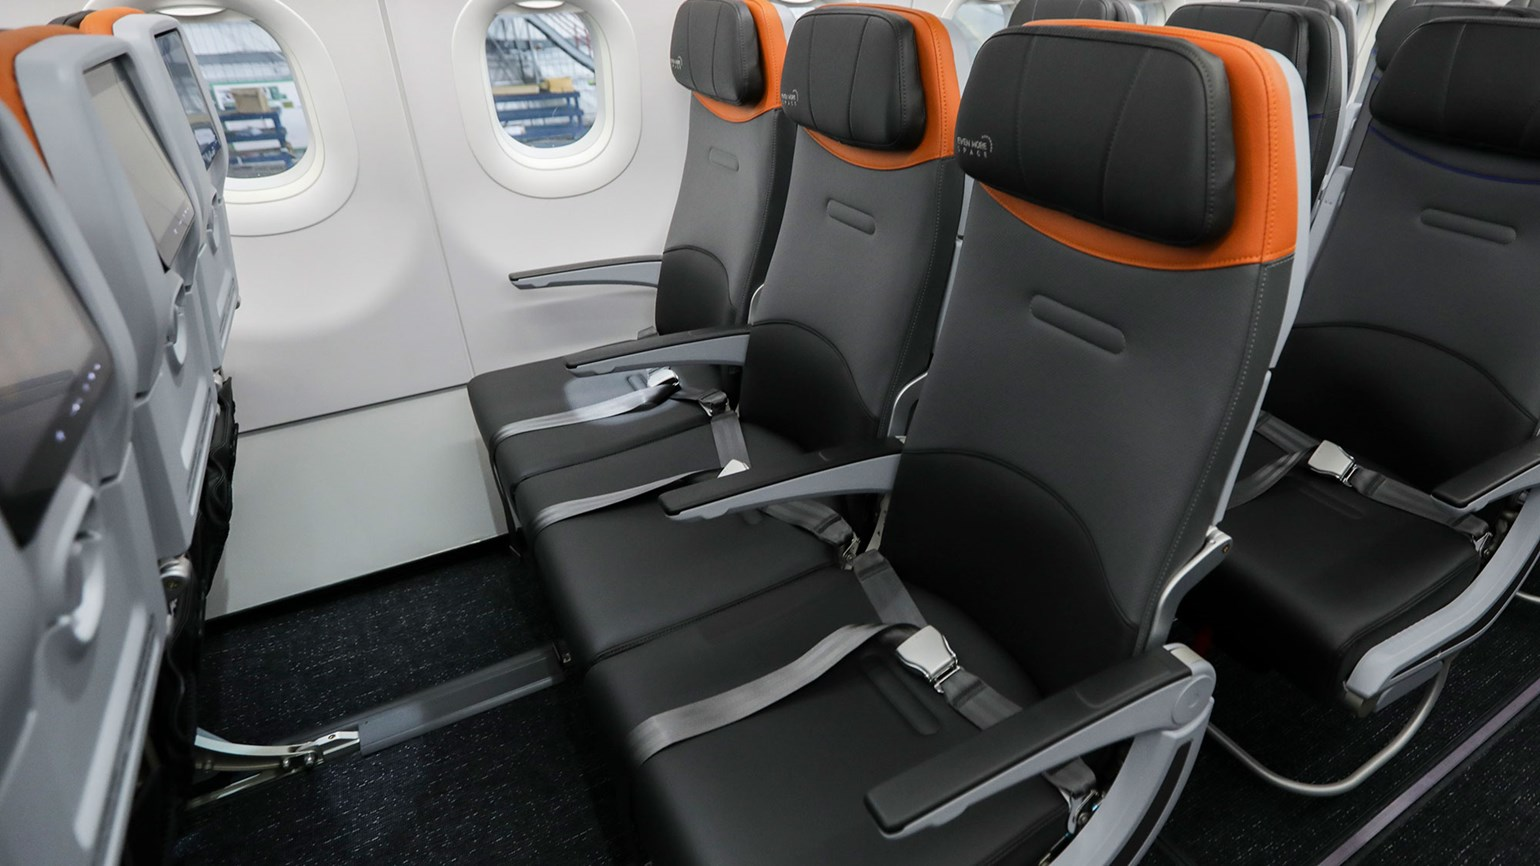 JetBlue seats wider in revamped cabin, but with less legroom